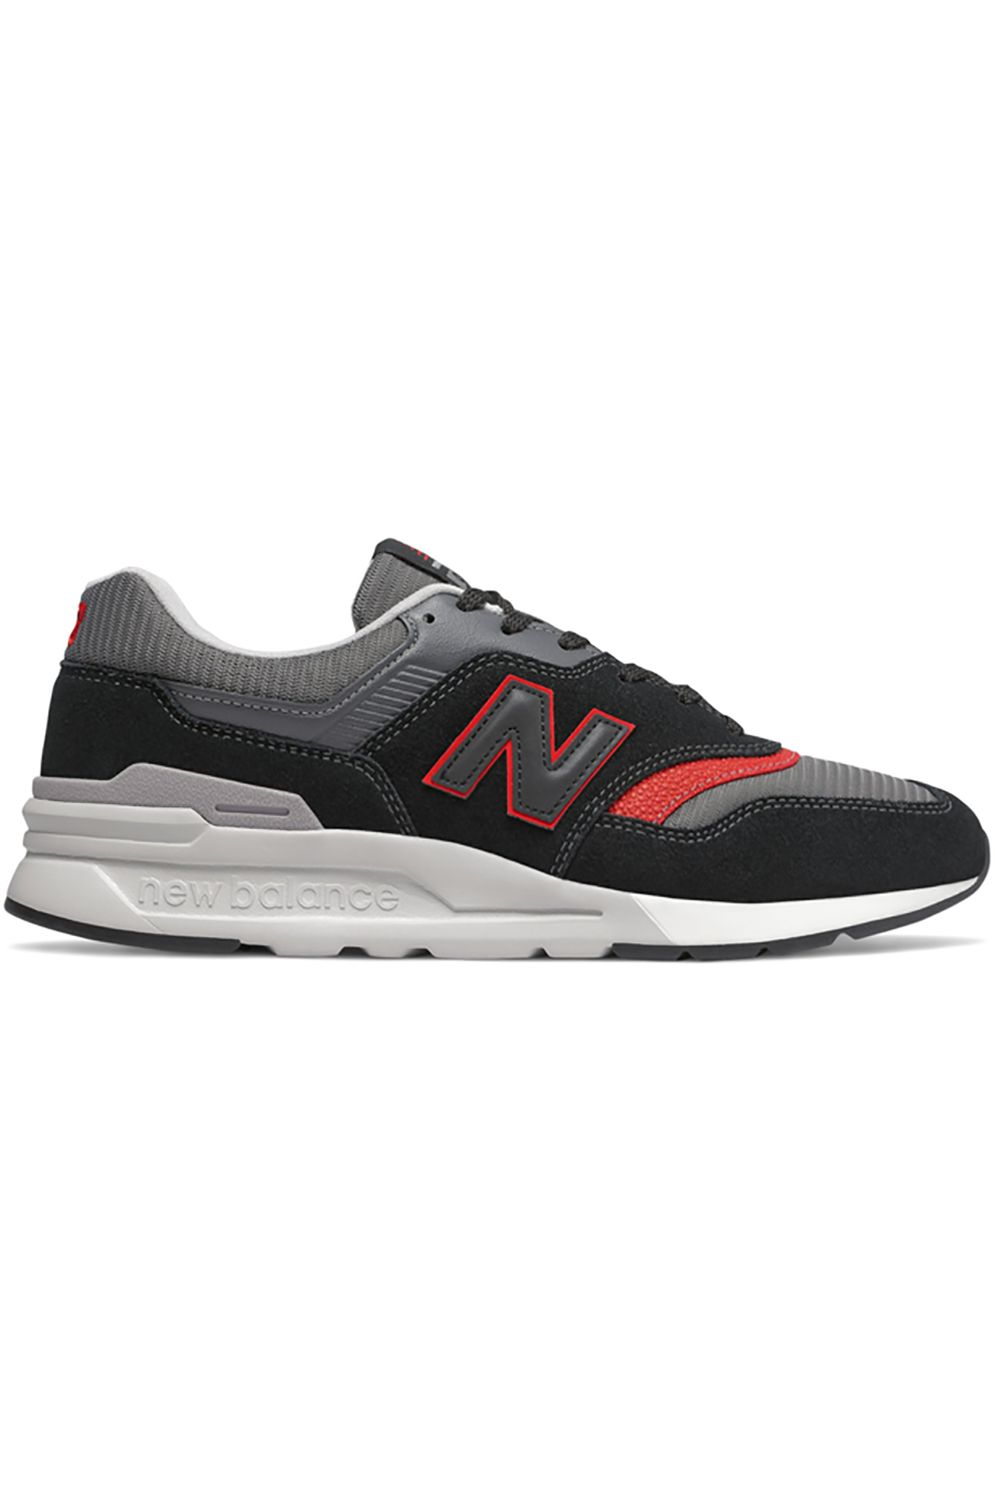 Tenis New Balance CM997 Black/Grey